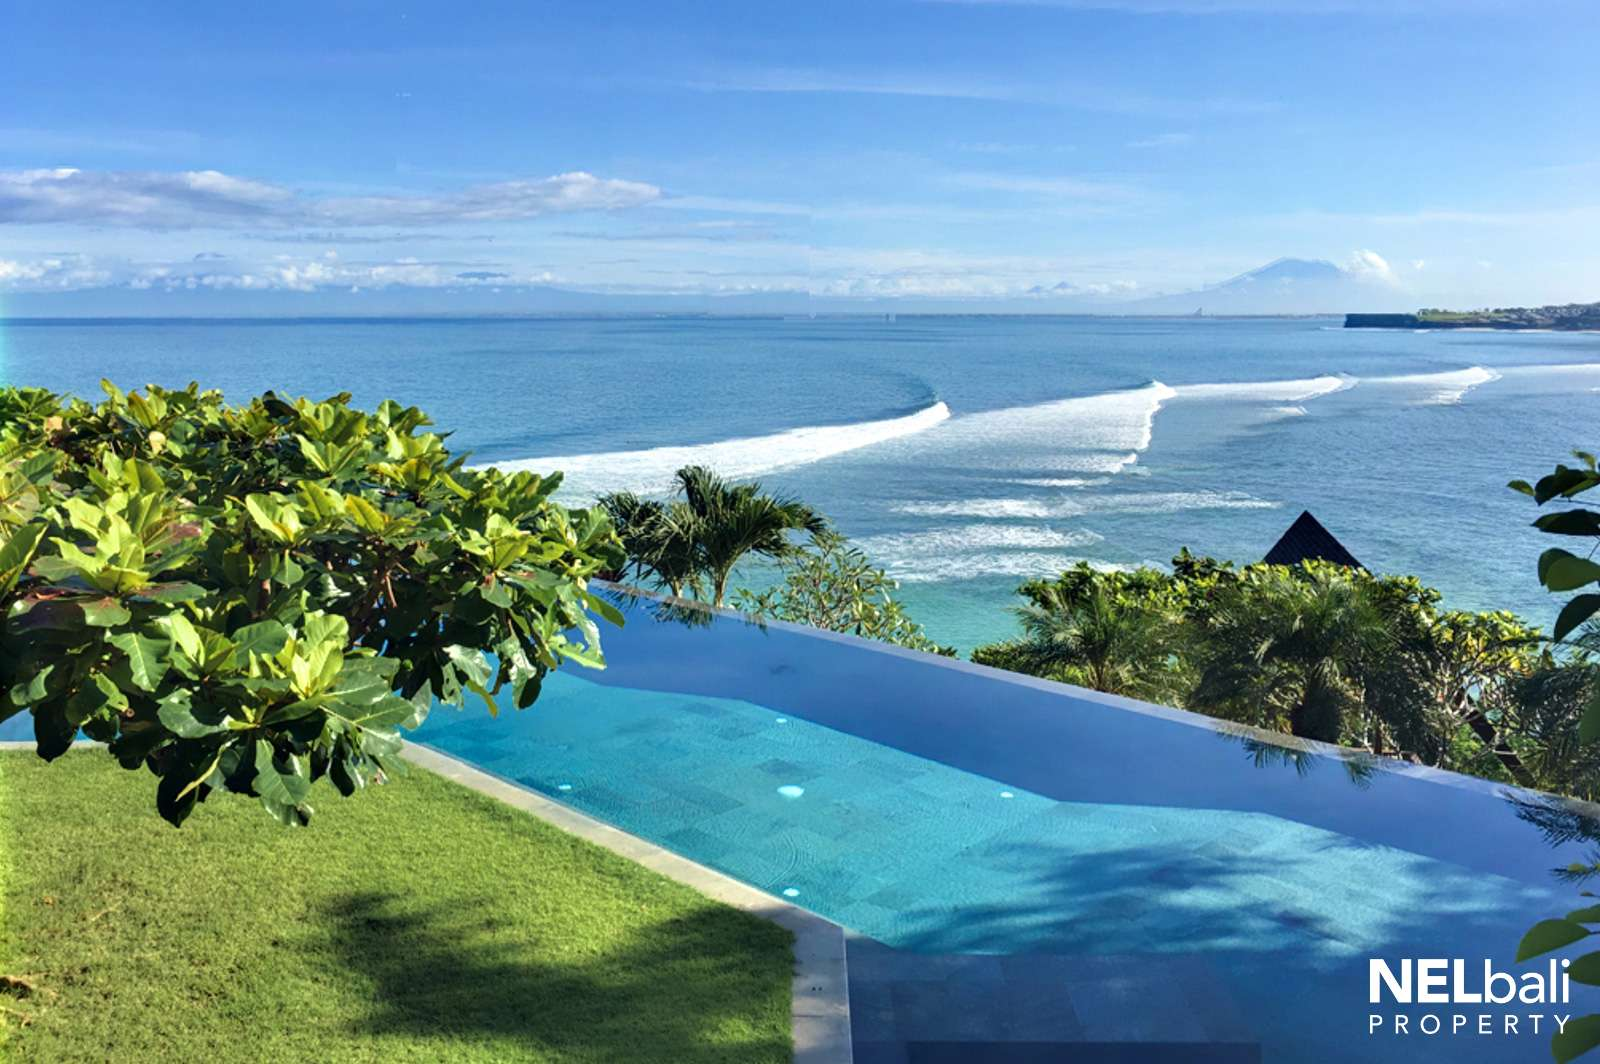 Top Bali Residence with Bali's Best Views